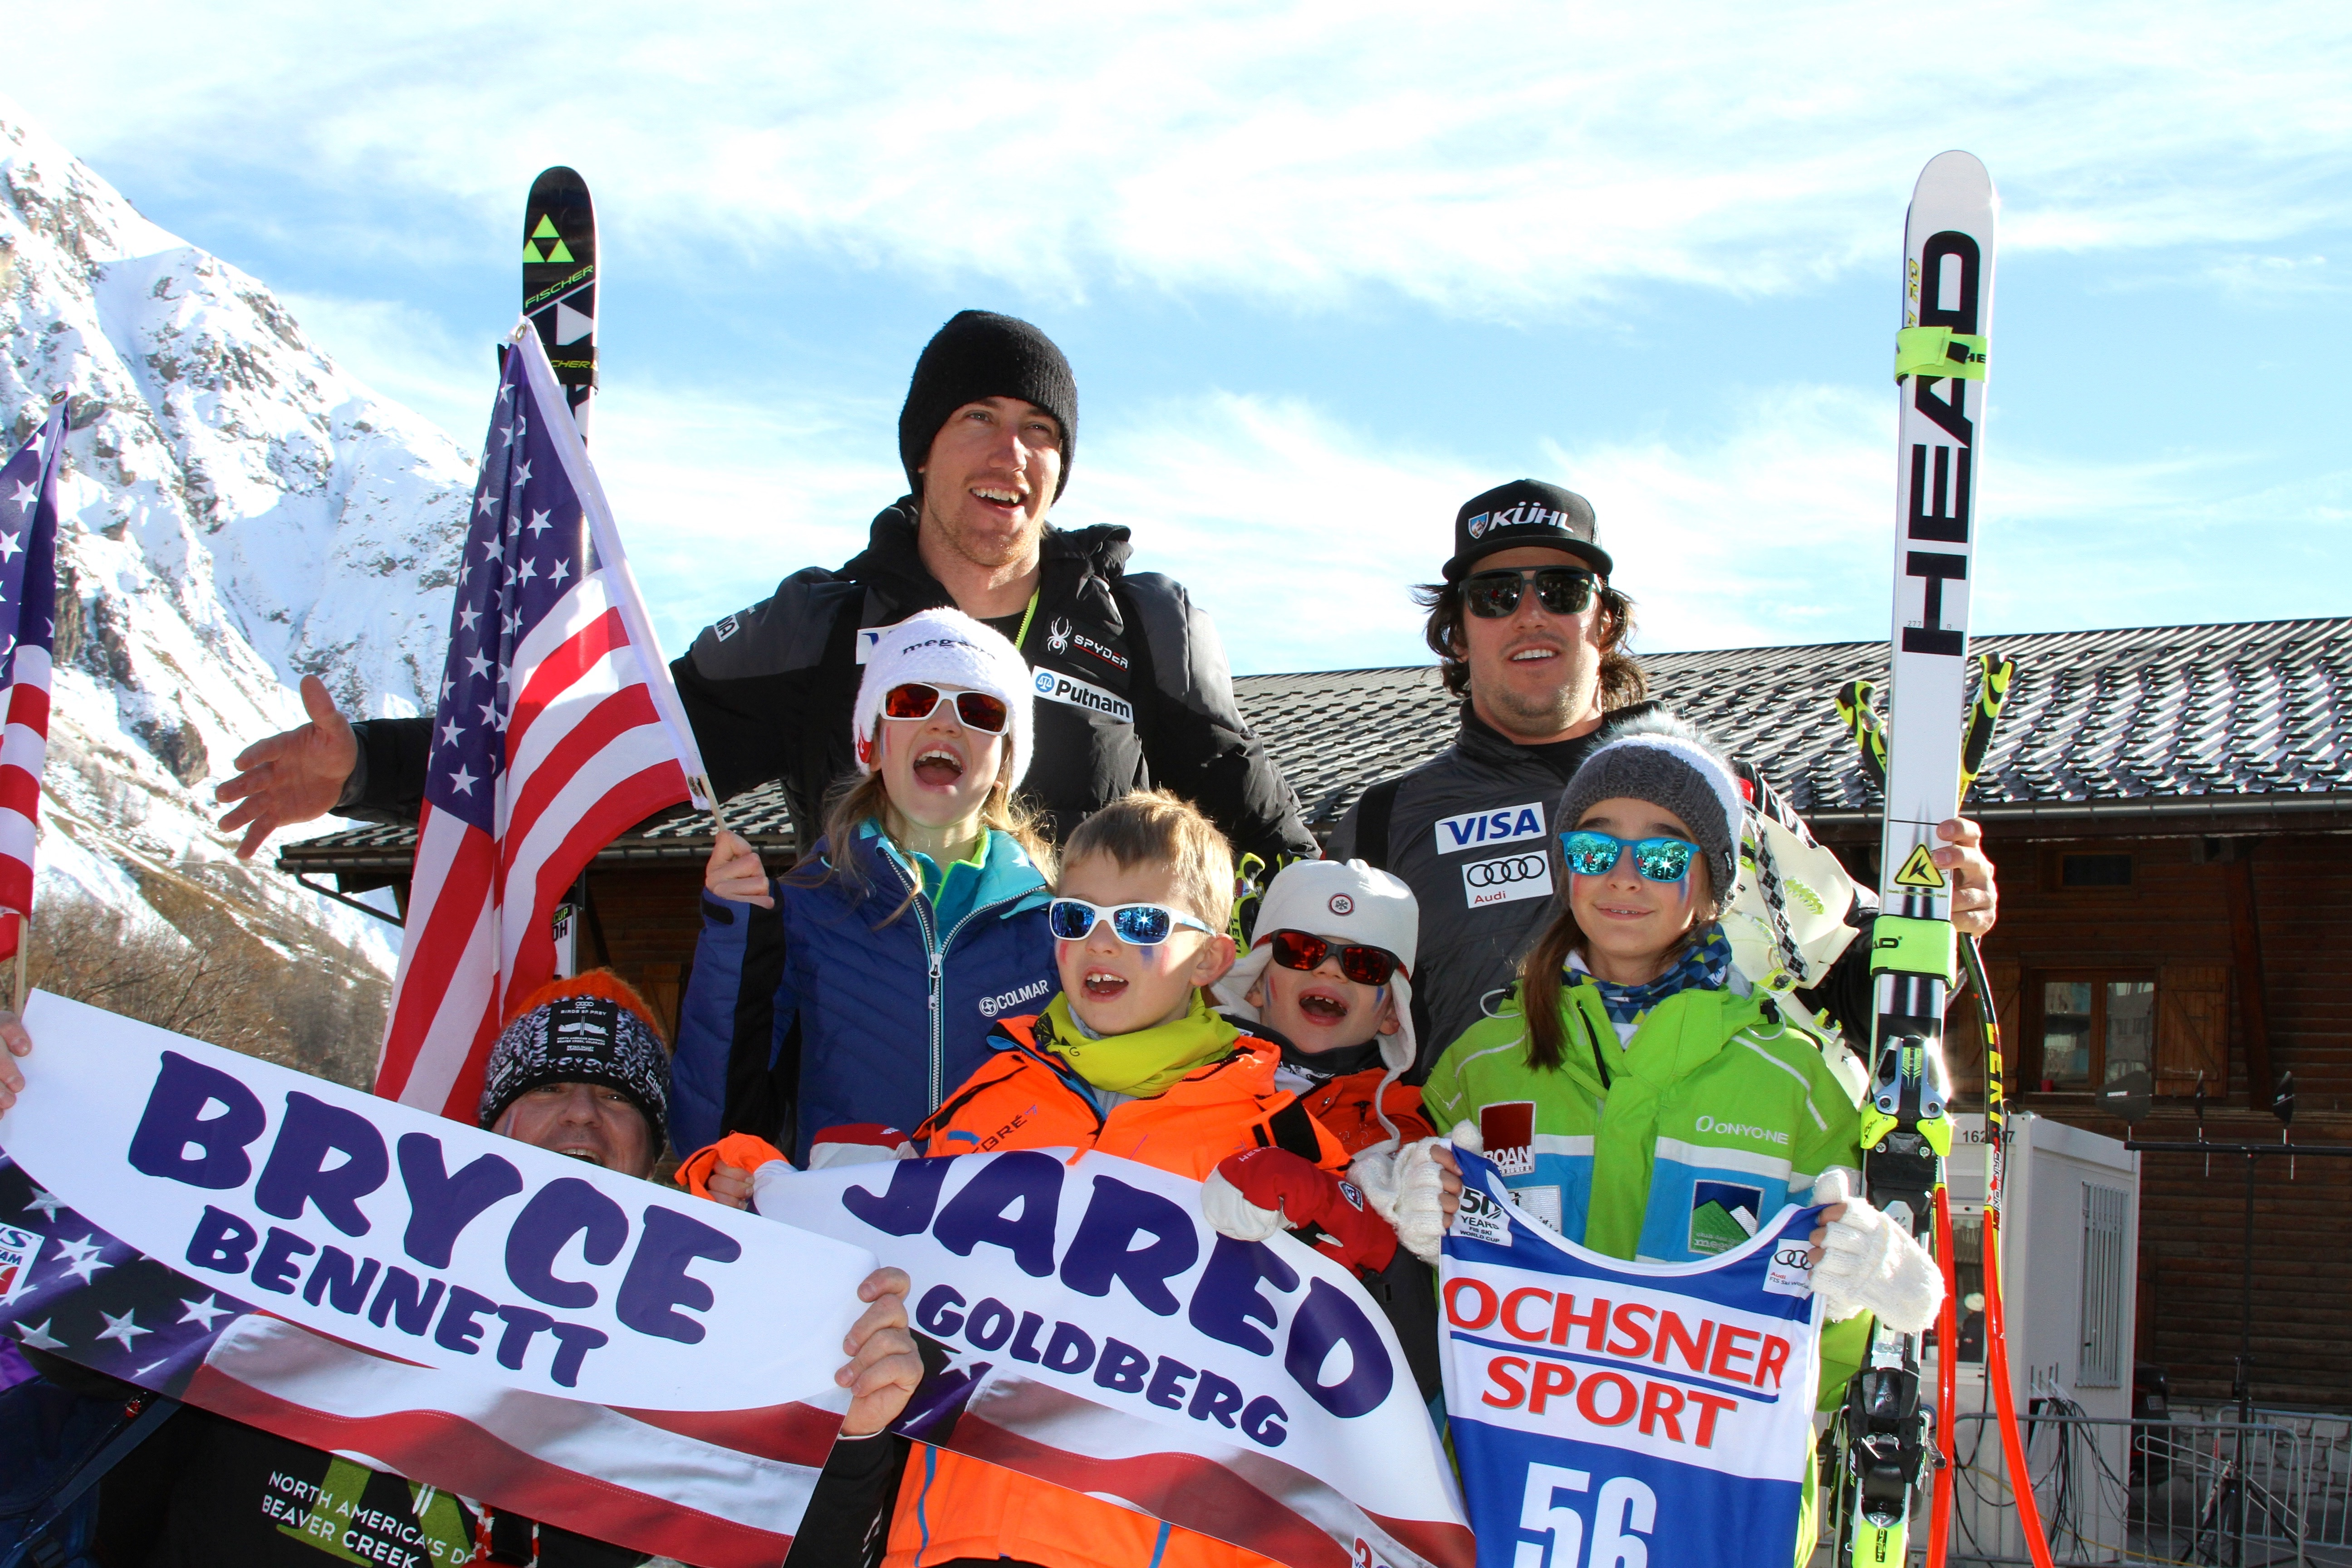 Our long term friends Bryce & Jared at Val d'Isere World Cup 2016